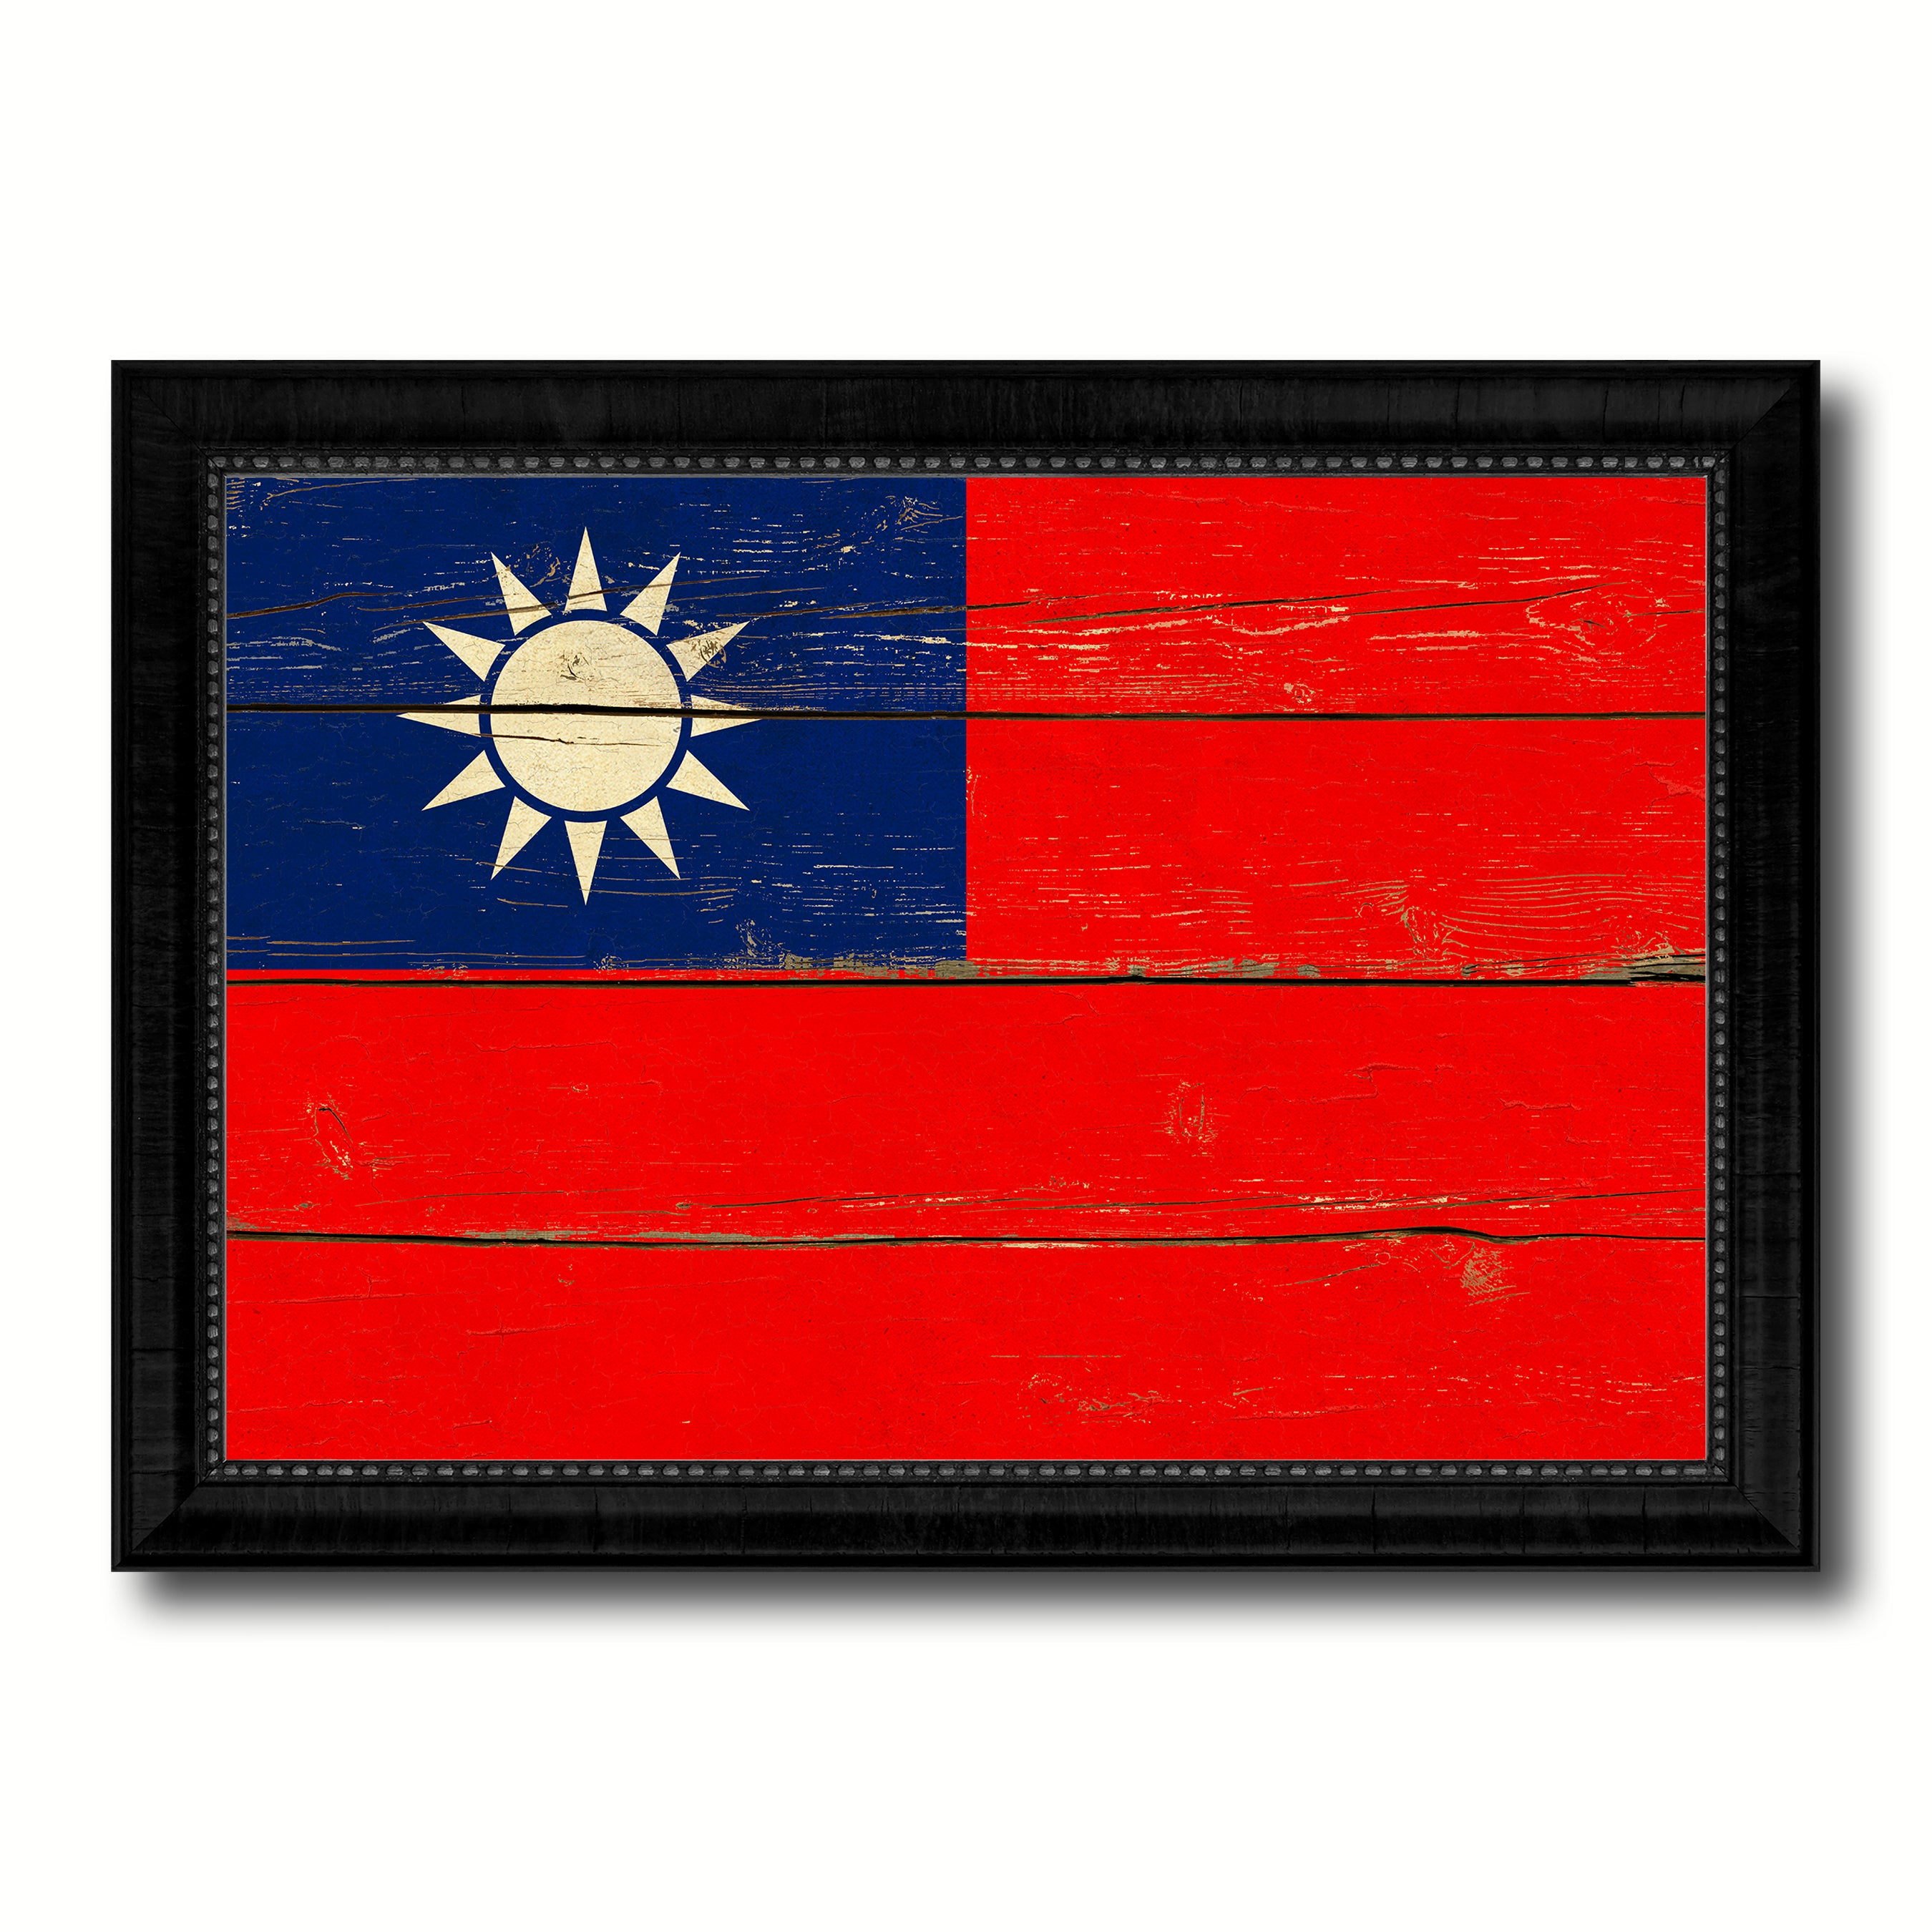 Taiwan Country Flag Vintage Canvas Print with Black Picture Frame Home Decor Gifts Wall Art Decoration Artwork